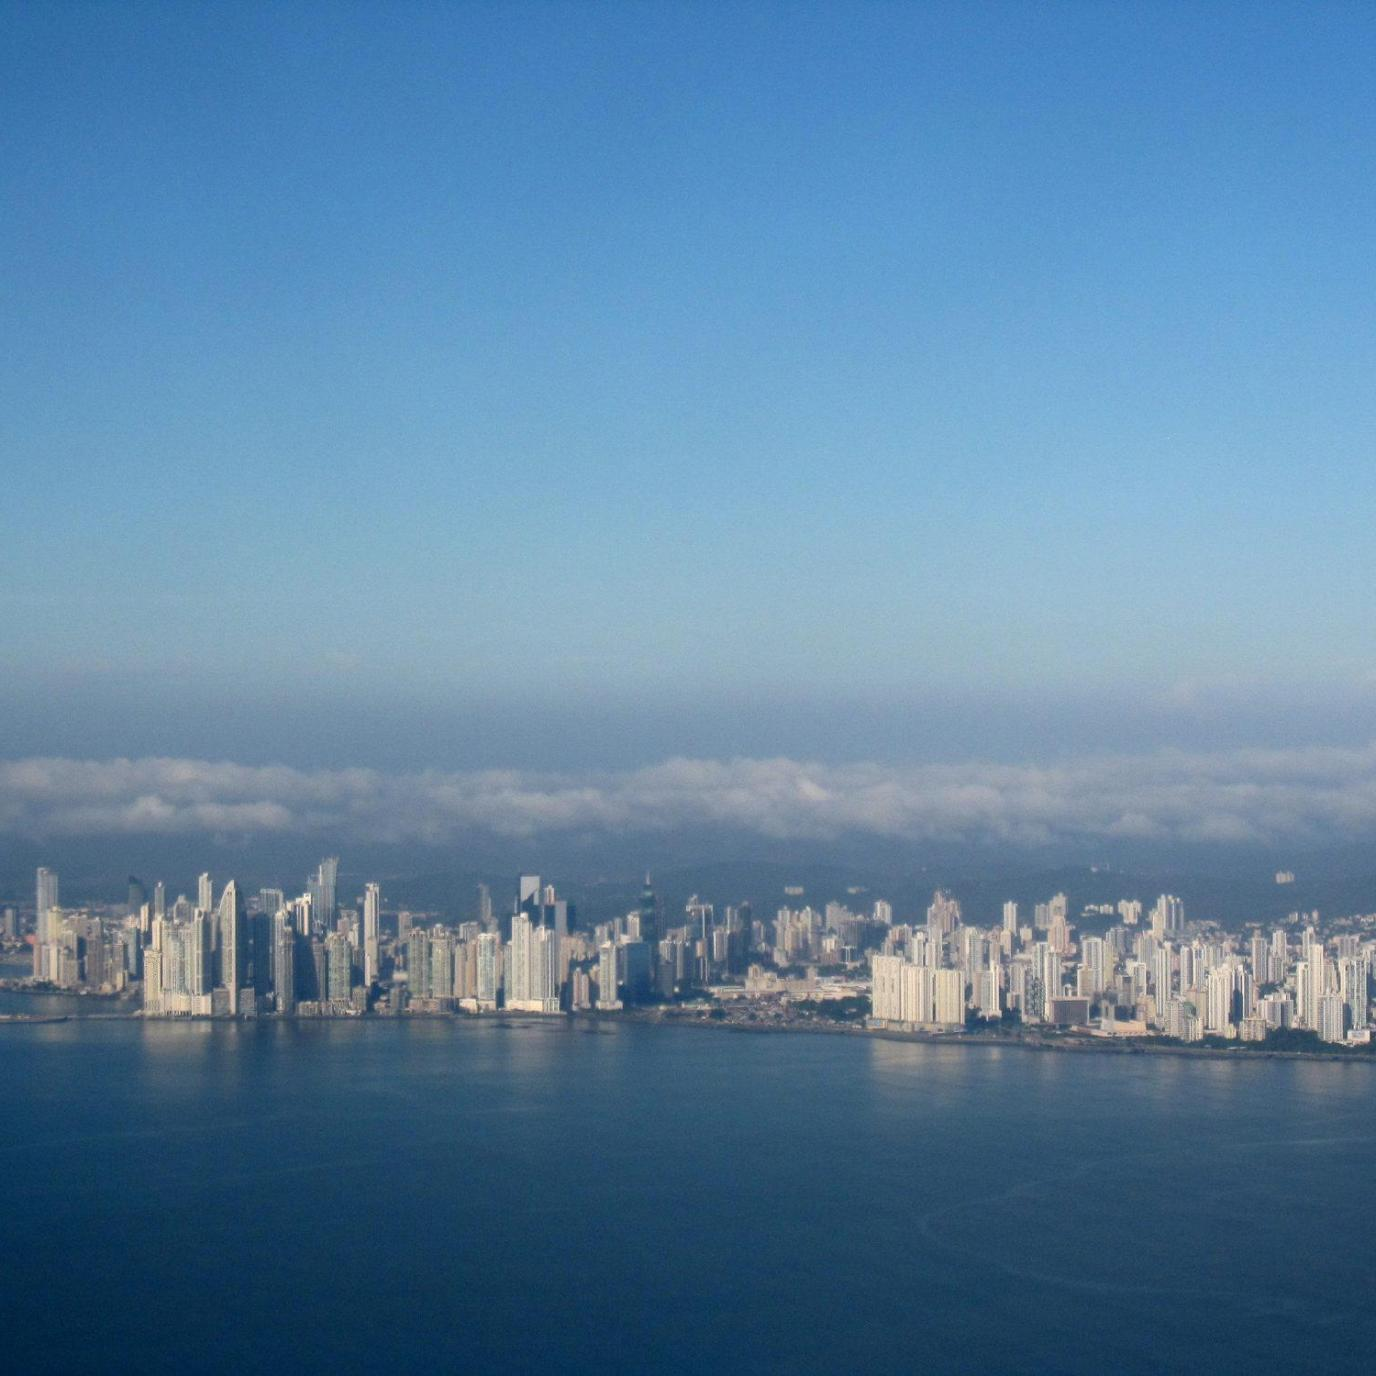 View on Panama City from the airplane